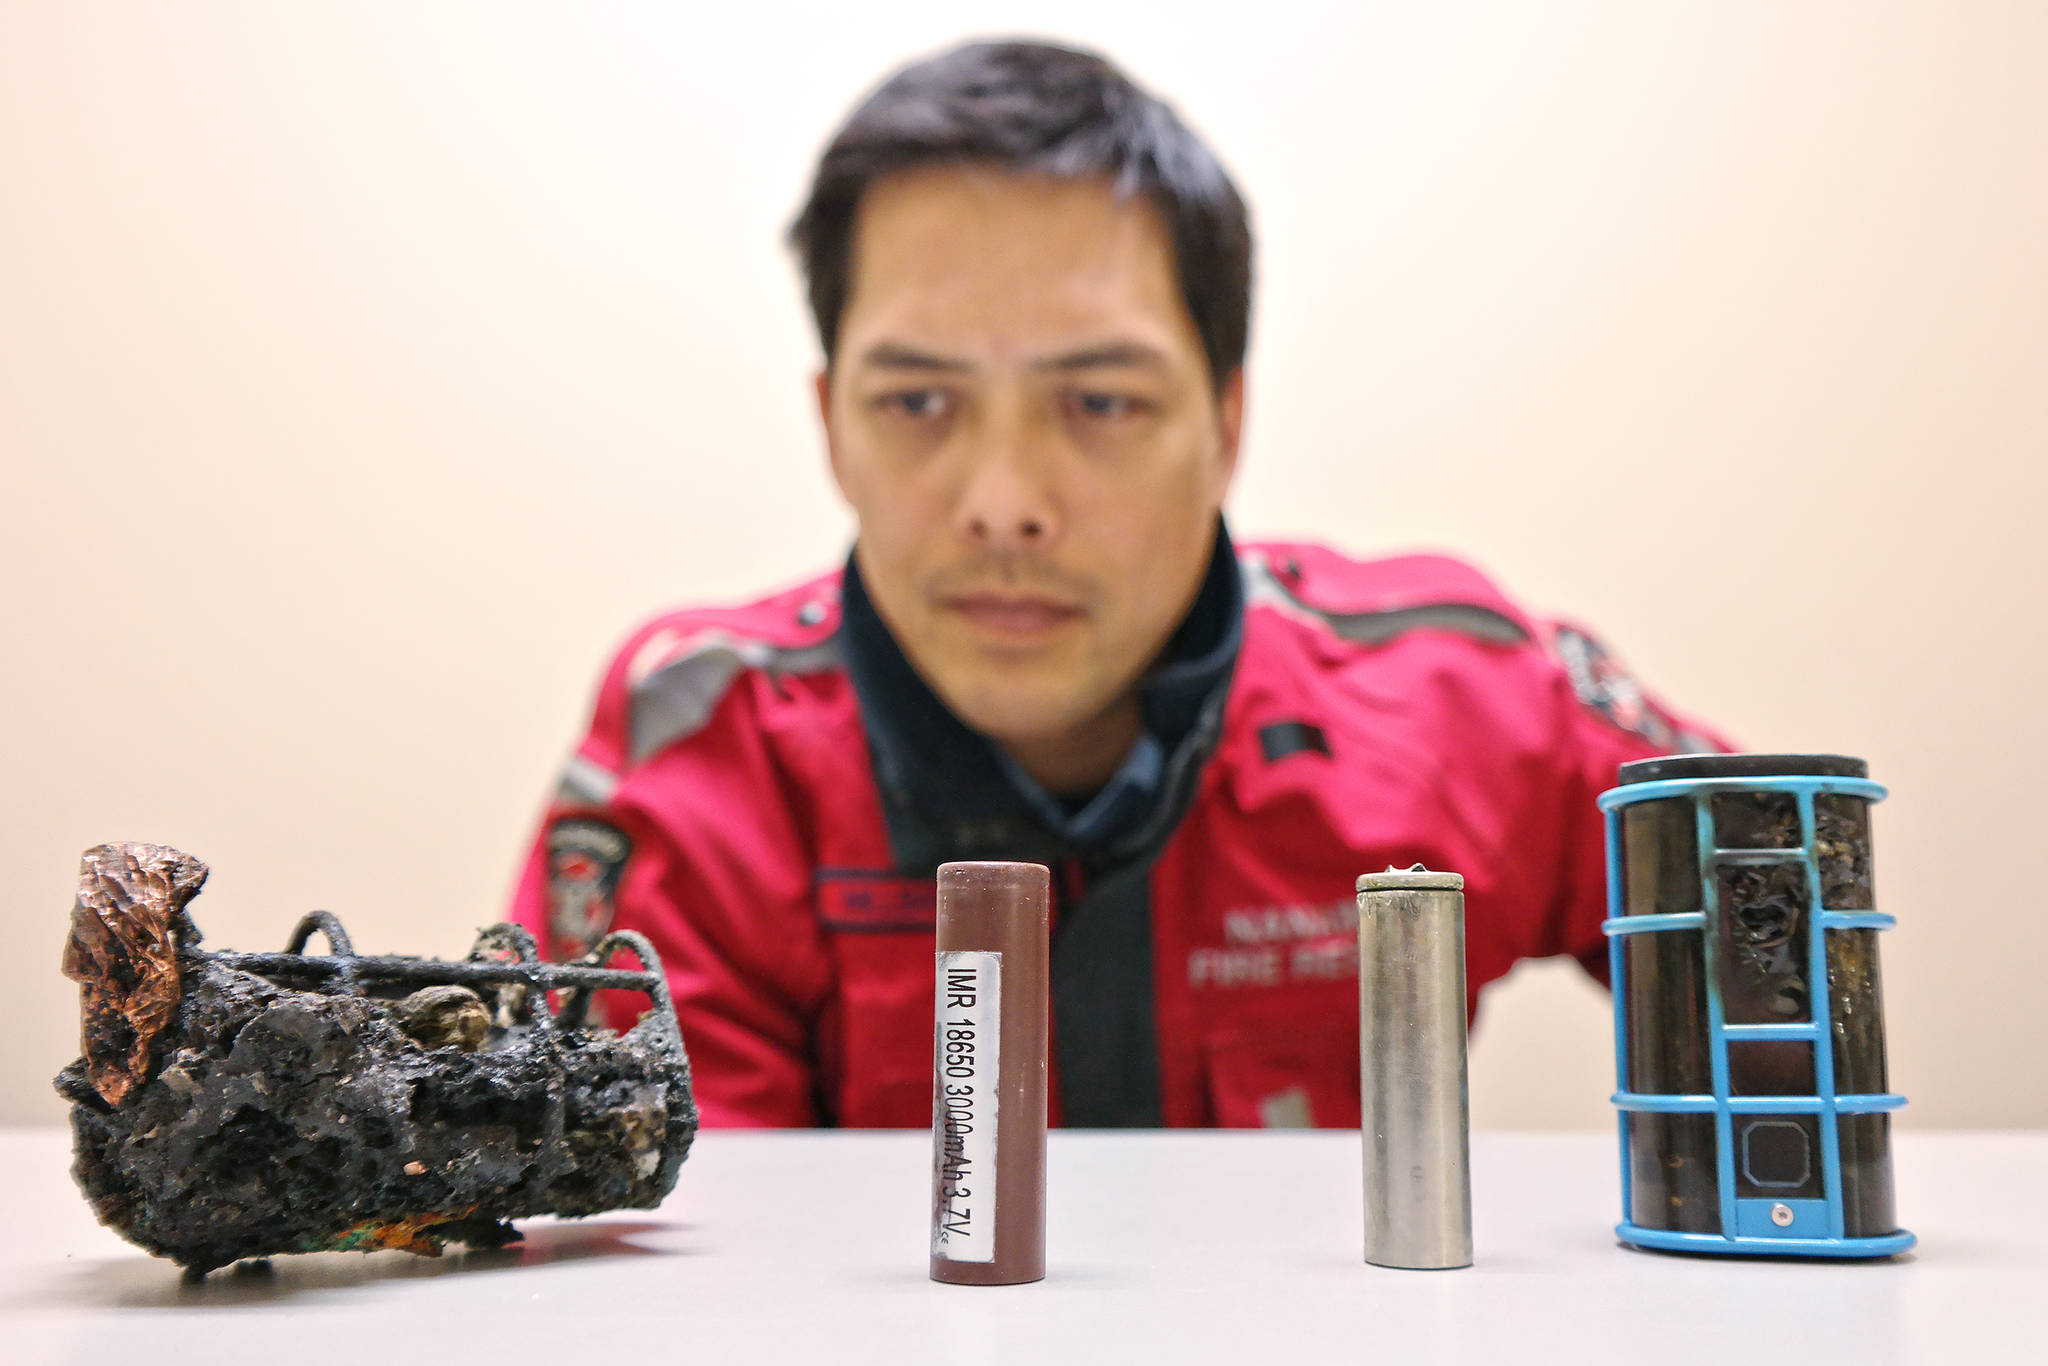 Alan Millbank, Nanaimo Fire Rescue fire prevention officer, shows off the e-cigarette unit, left, that started a fire in a home and displaced a family of four Monday night, along side another unit and batteries from the same model made by the same manufacturer that have also overheated and is warning the units could start more and potentially deadly blazes. (CHRIS BUSH/The News Bulletin)